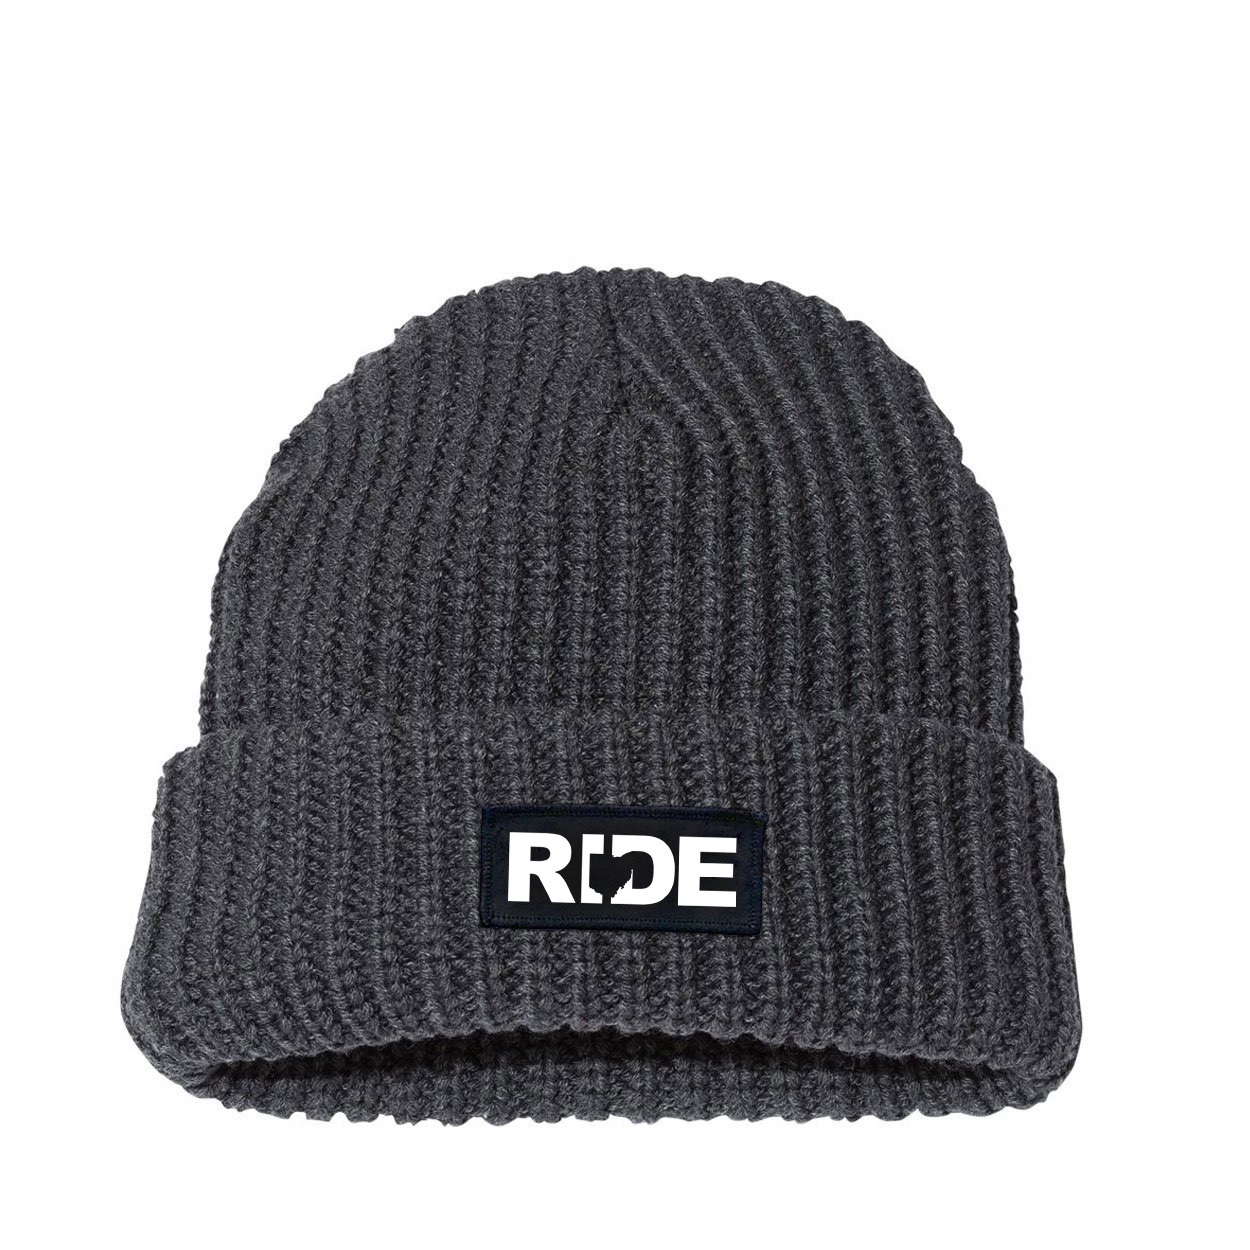 Ride Ohio Night Out Woven Patch Roll Up Jumbo Chunky Knit Beanie Charcoal (White Logo)